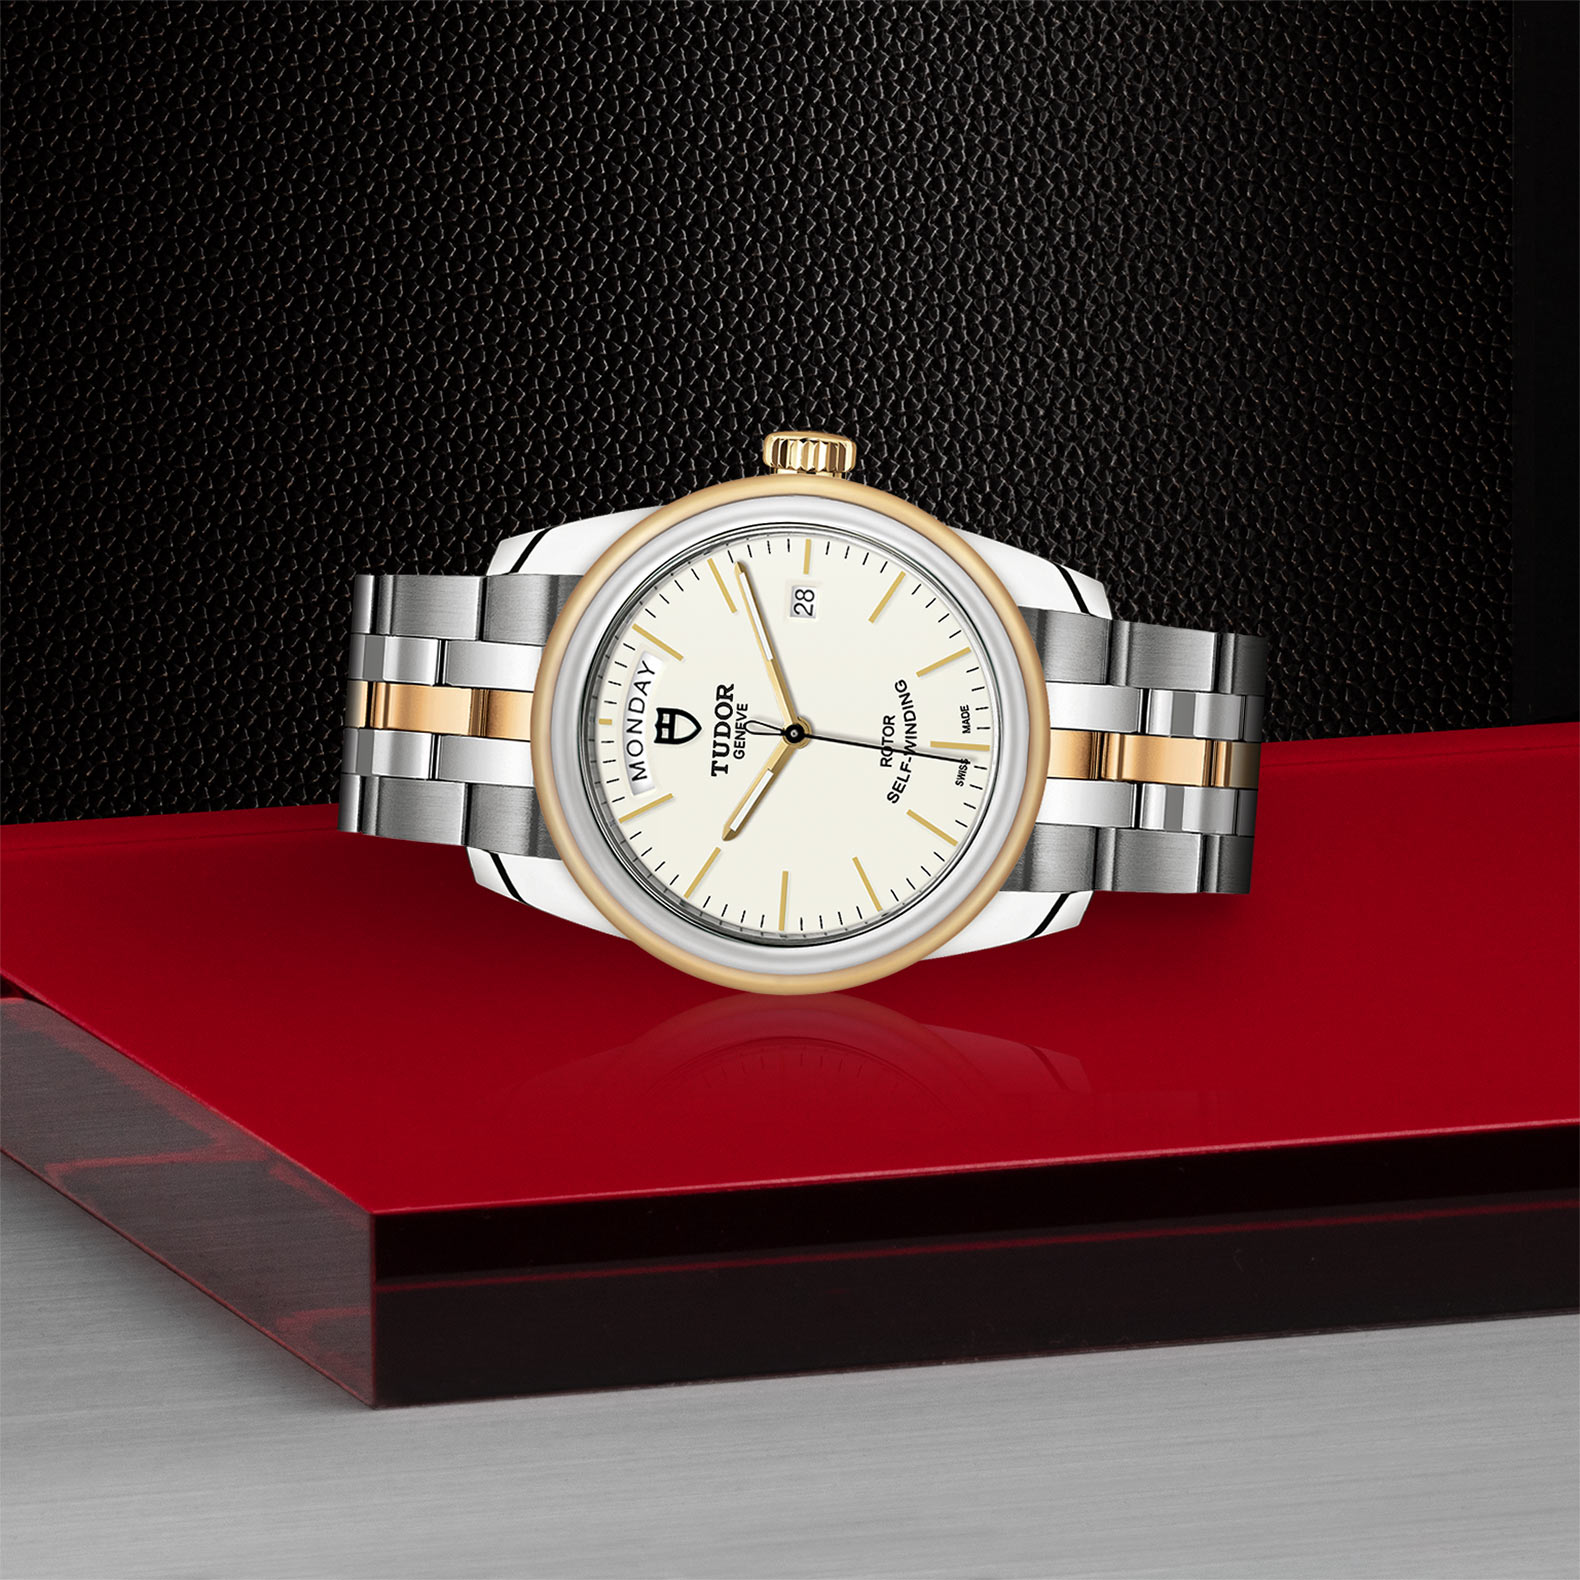 TUDOR Glamour Date+Day - M56003-0112